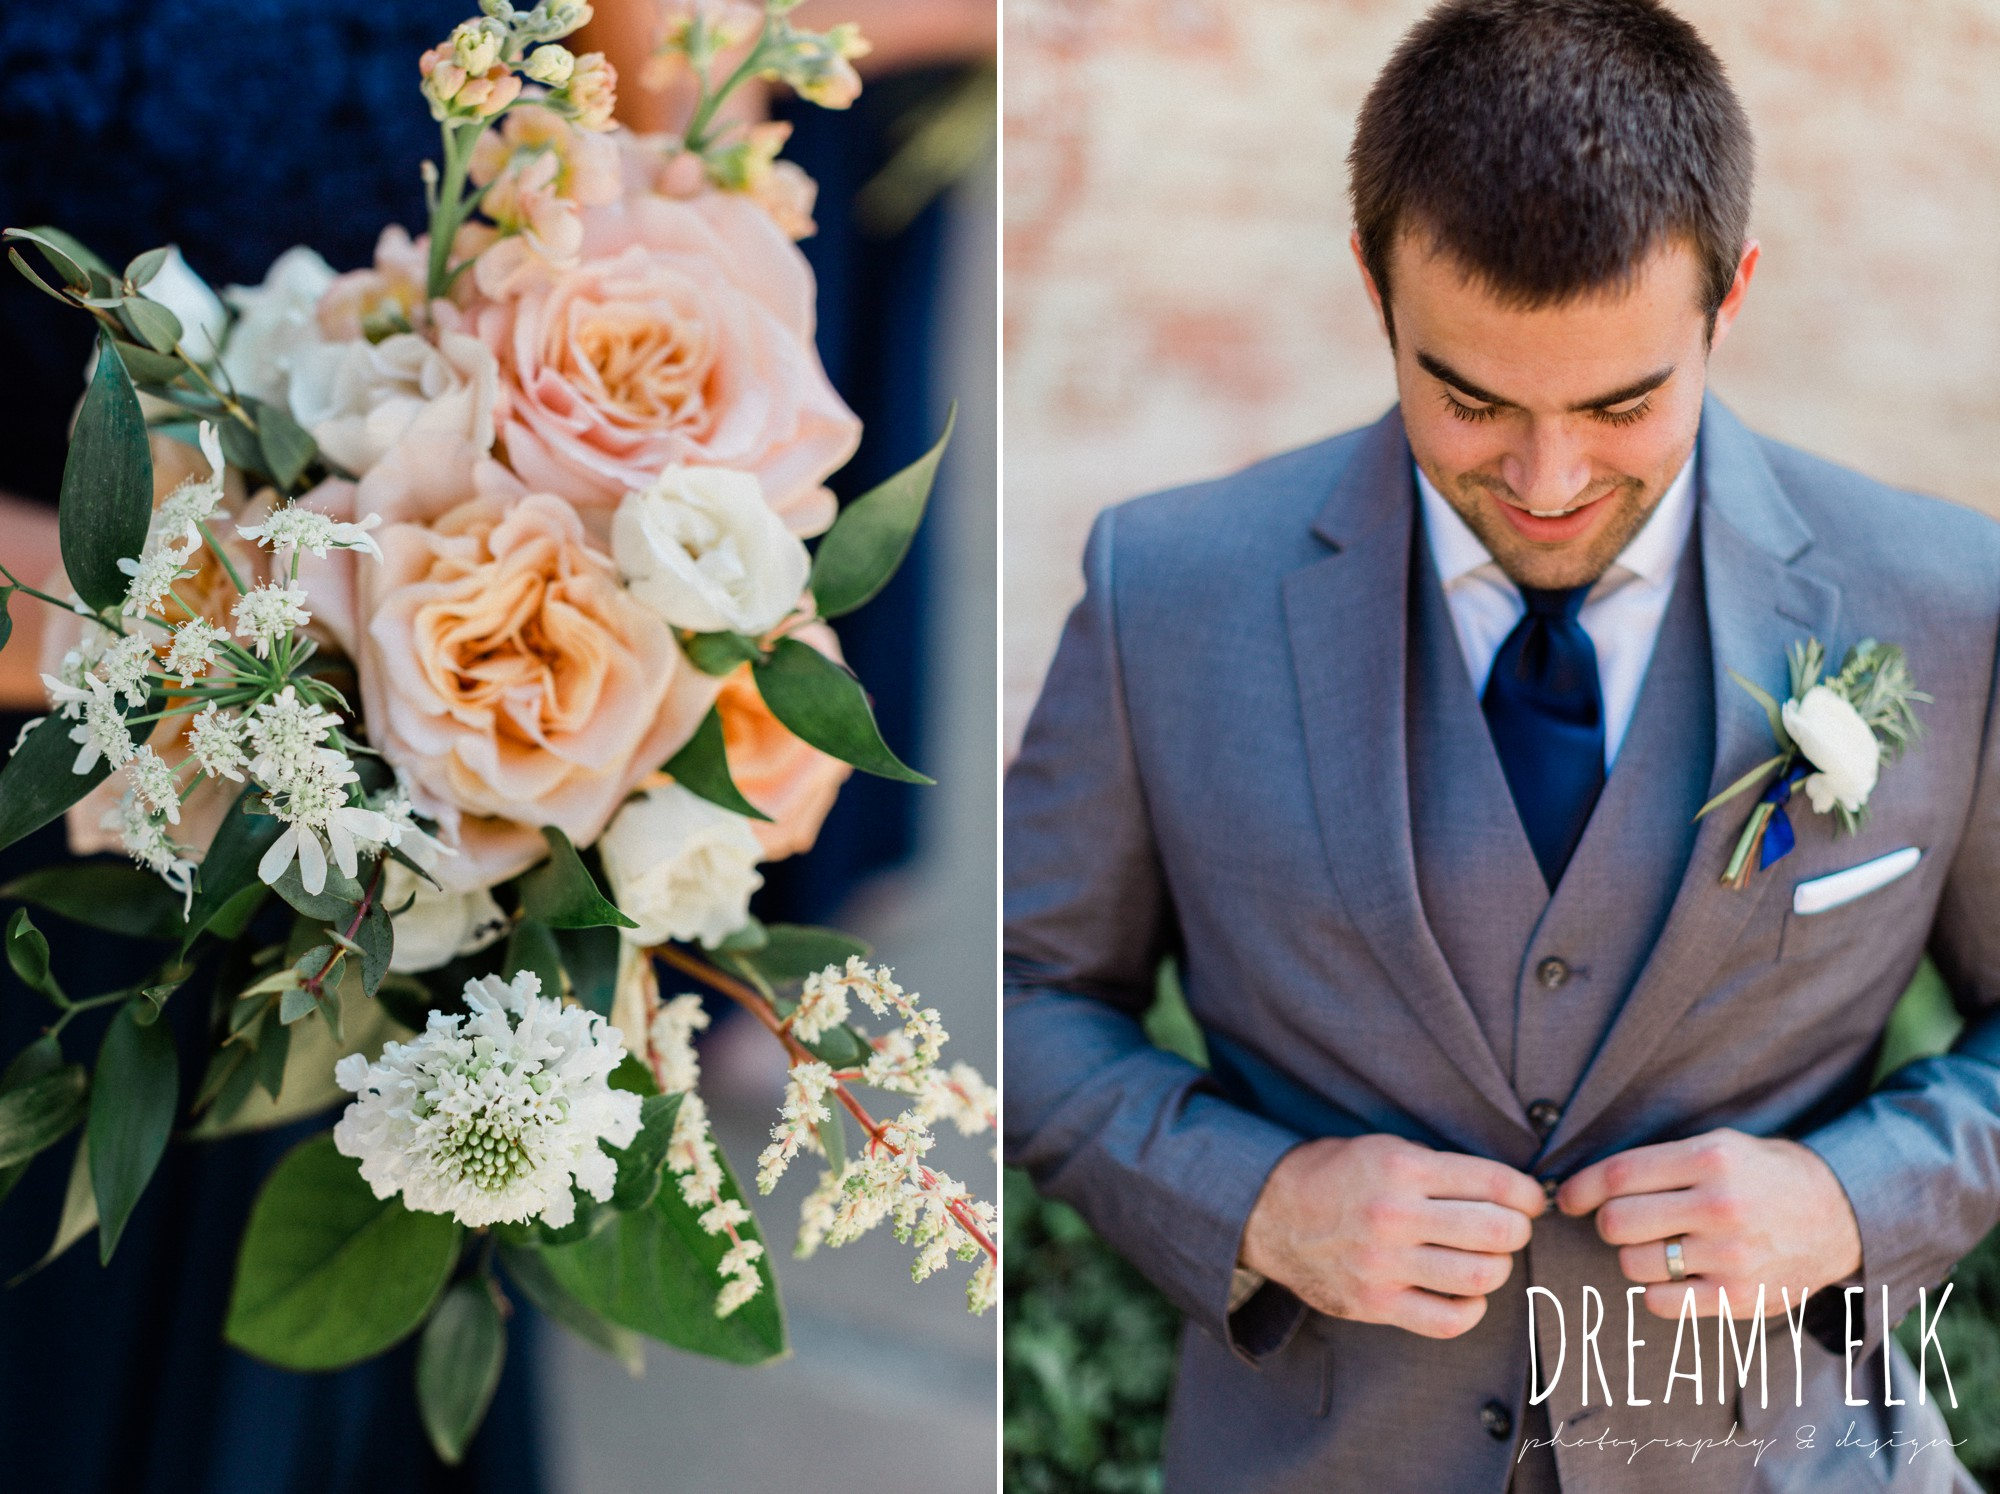 unforgettable floral, groom, gray suit navy tie, spring wedding photo college station texas, dreamy elk photography and design